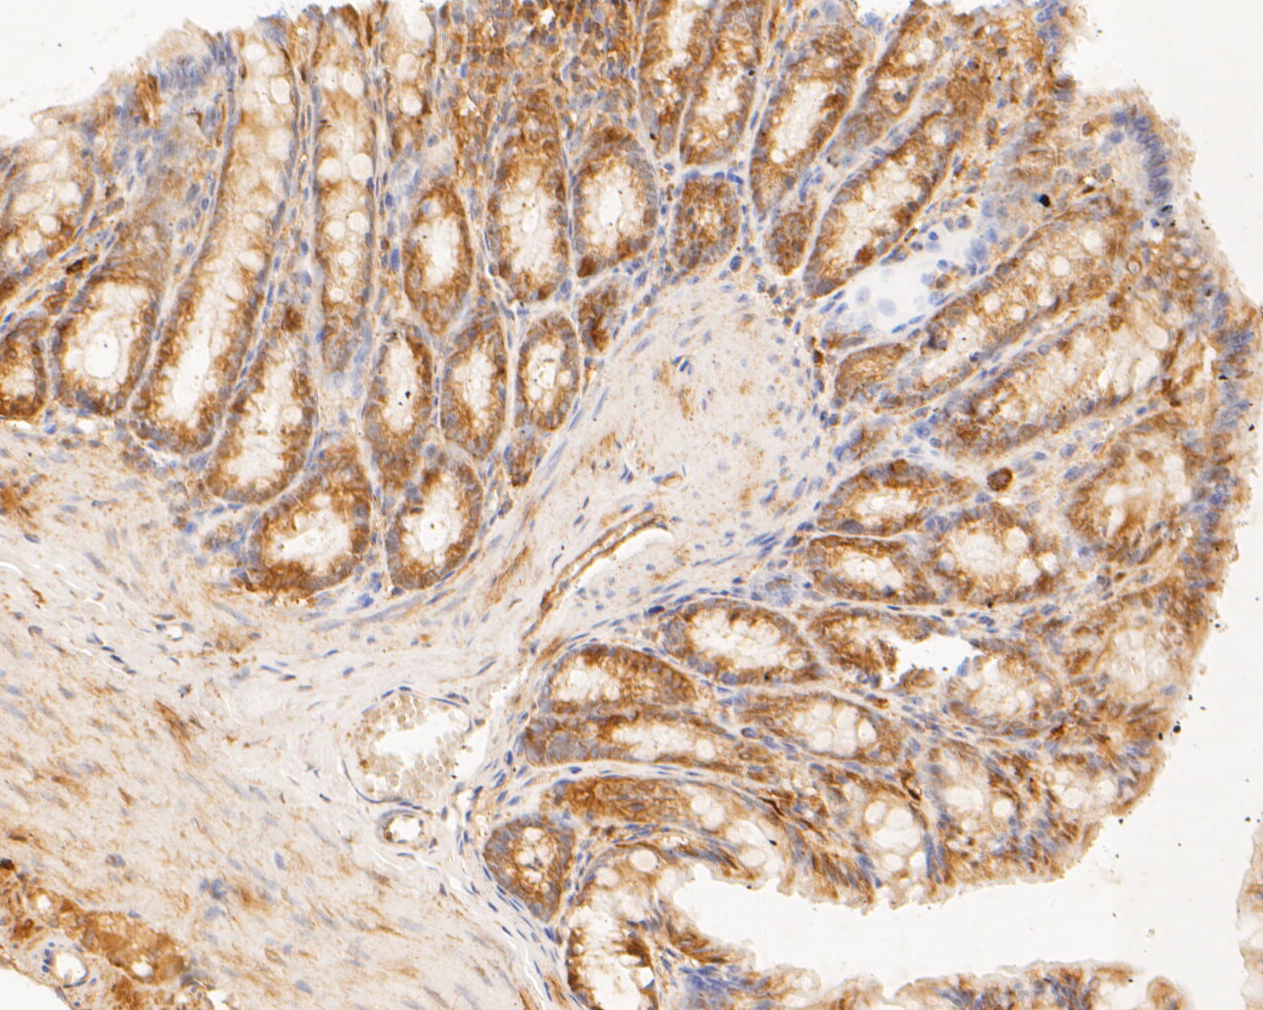 Immunohistochemical analysis of paraffin-embedded rat large intestine tissue using anti-TMEM163 antibody. The section was pre-treated using heat mediated antigen retrieval with Tris-EDTA buffer (pH 8.0-8.4) for 20 minutes.The tissues were blocked in 5% BSA for 30 minutes at room temperature, washed with ddH2O and PBS, and then probed with the primary antibody (ER1901-91, 1/50) for 30 minutes at room temperature. The detection was performed using an HRP conjugated compact polymer system. DAB was used as the chromogen. Tissues were counterstained with hematoxylin and mounted with DPX.